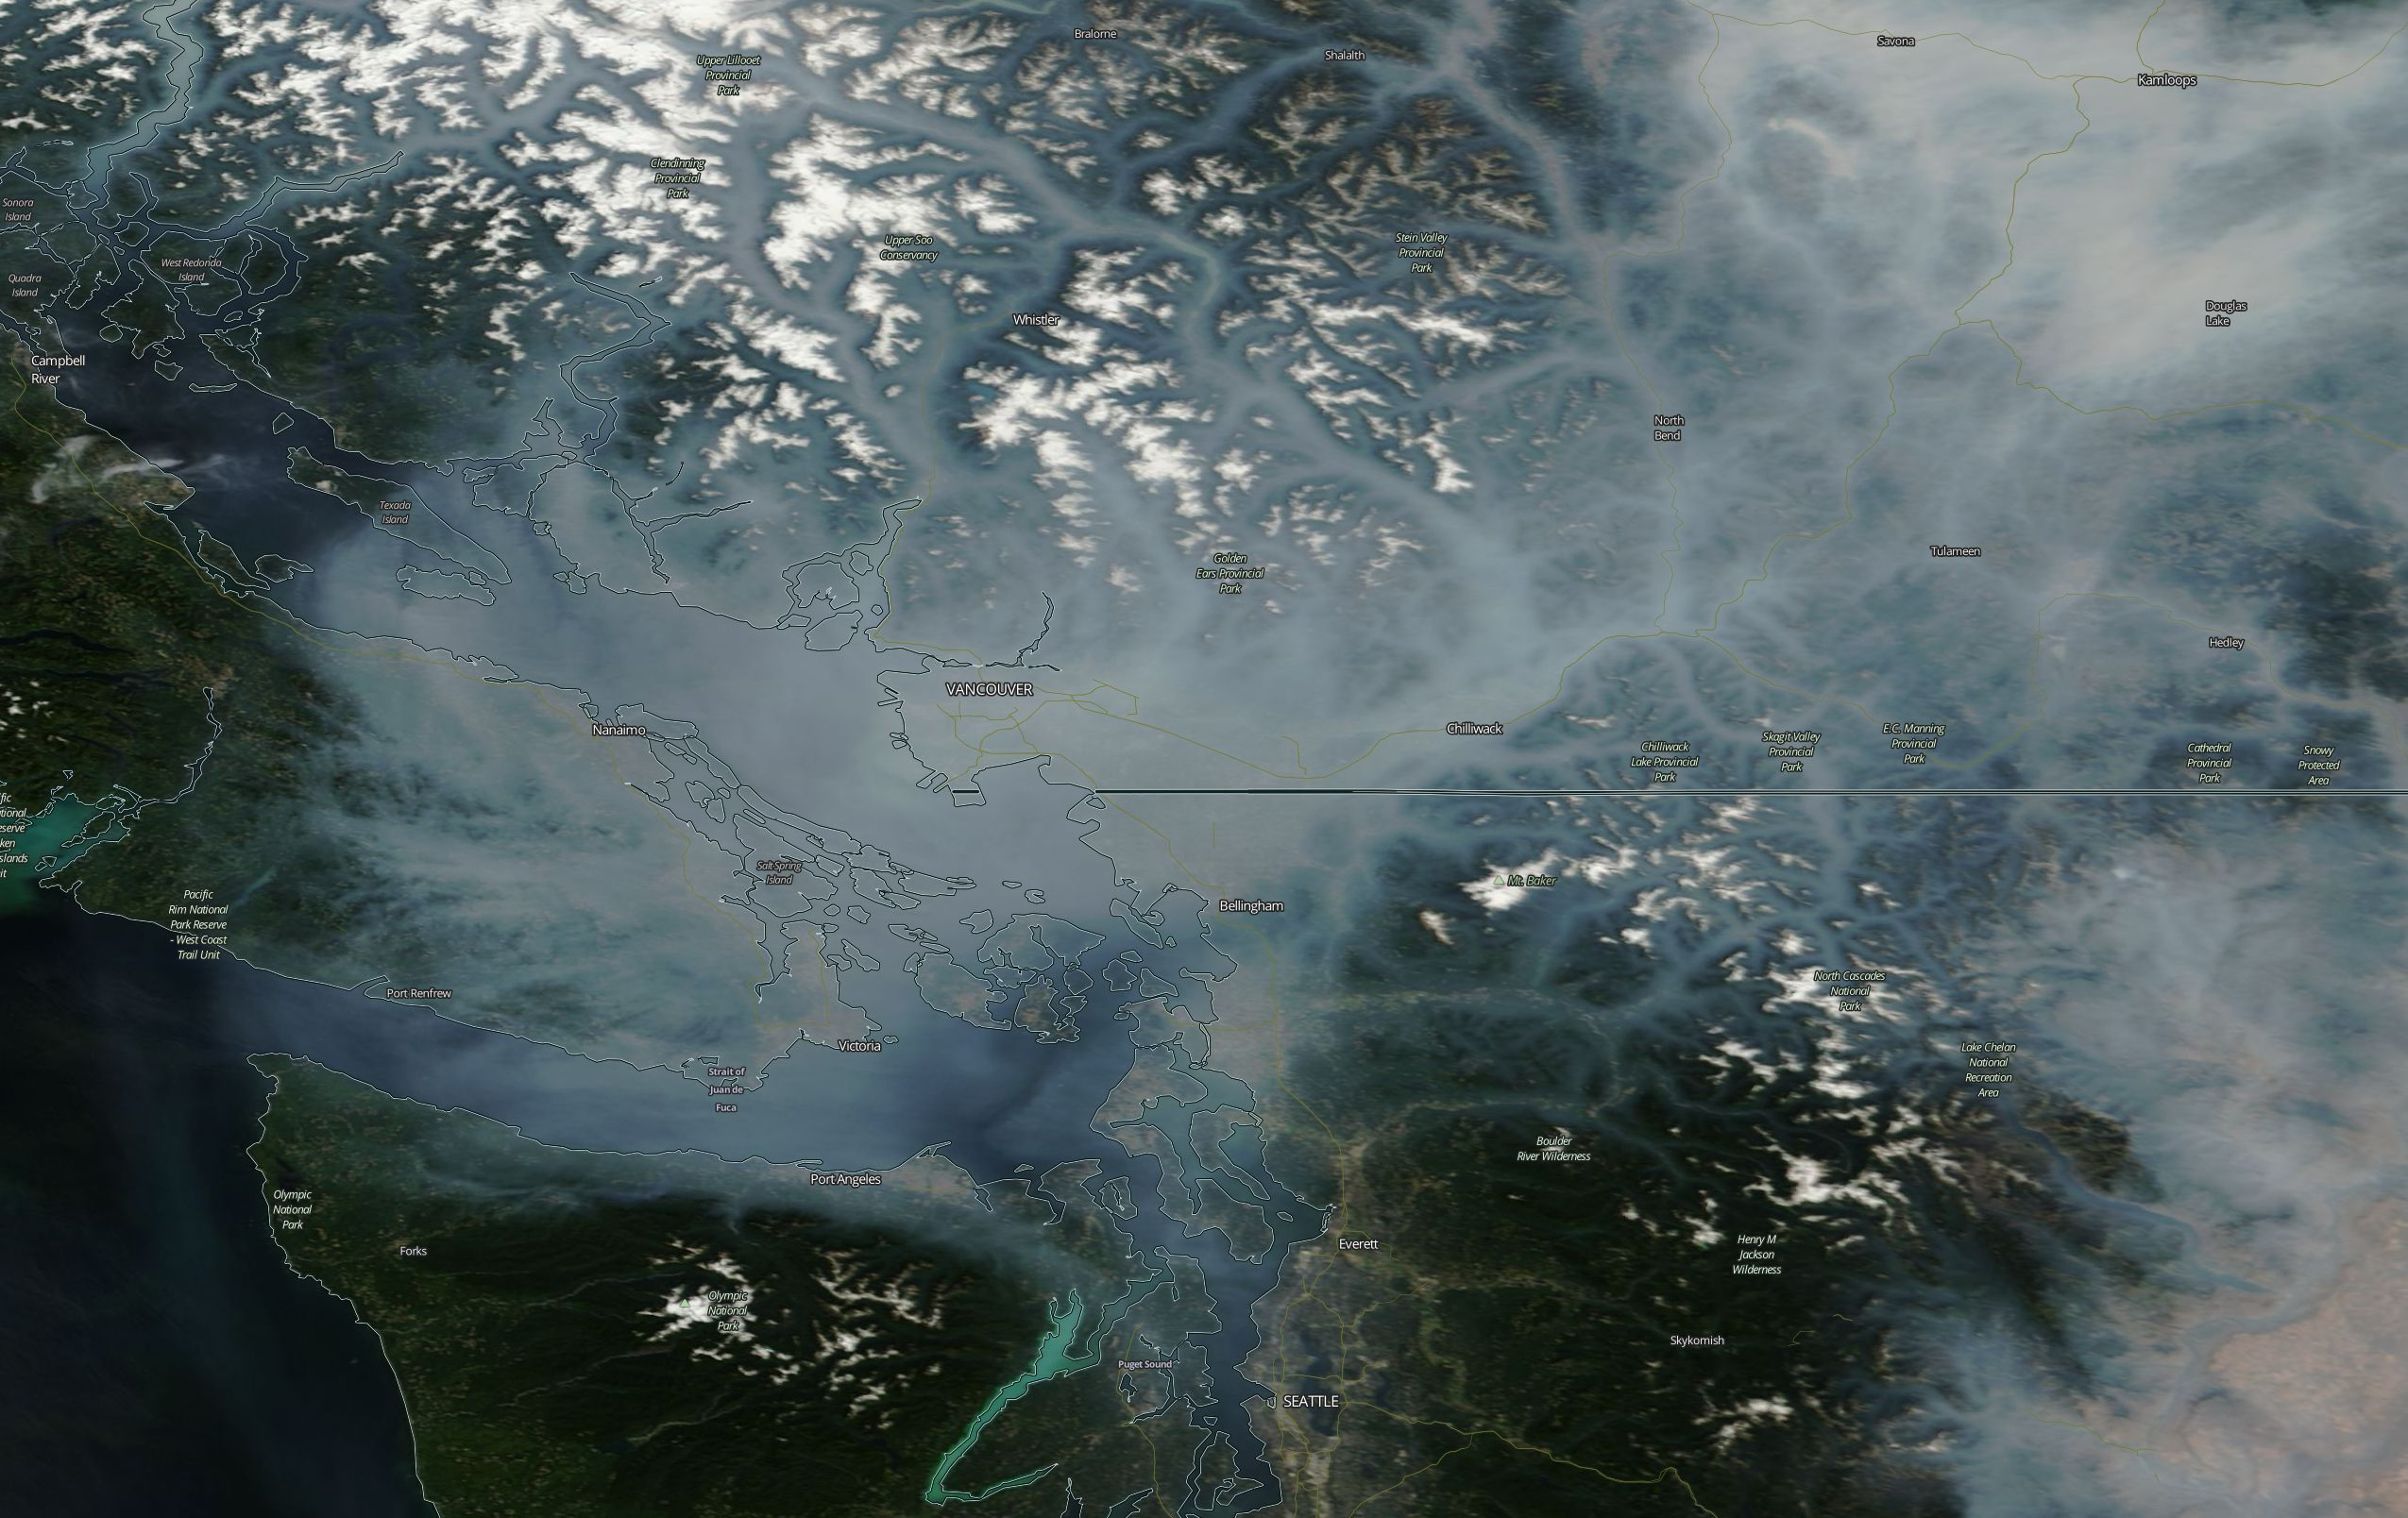 Photo from NASA MODIS satellite taken on Aug. 1, 2017 showing wildfire smoke spreading south into Western Washington (Photo: NASA/MODIS)